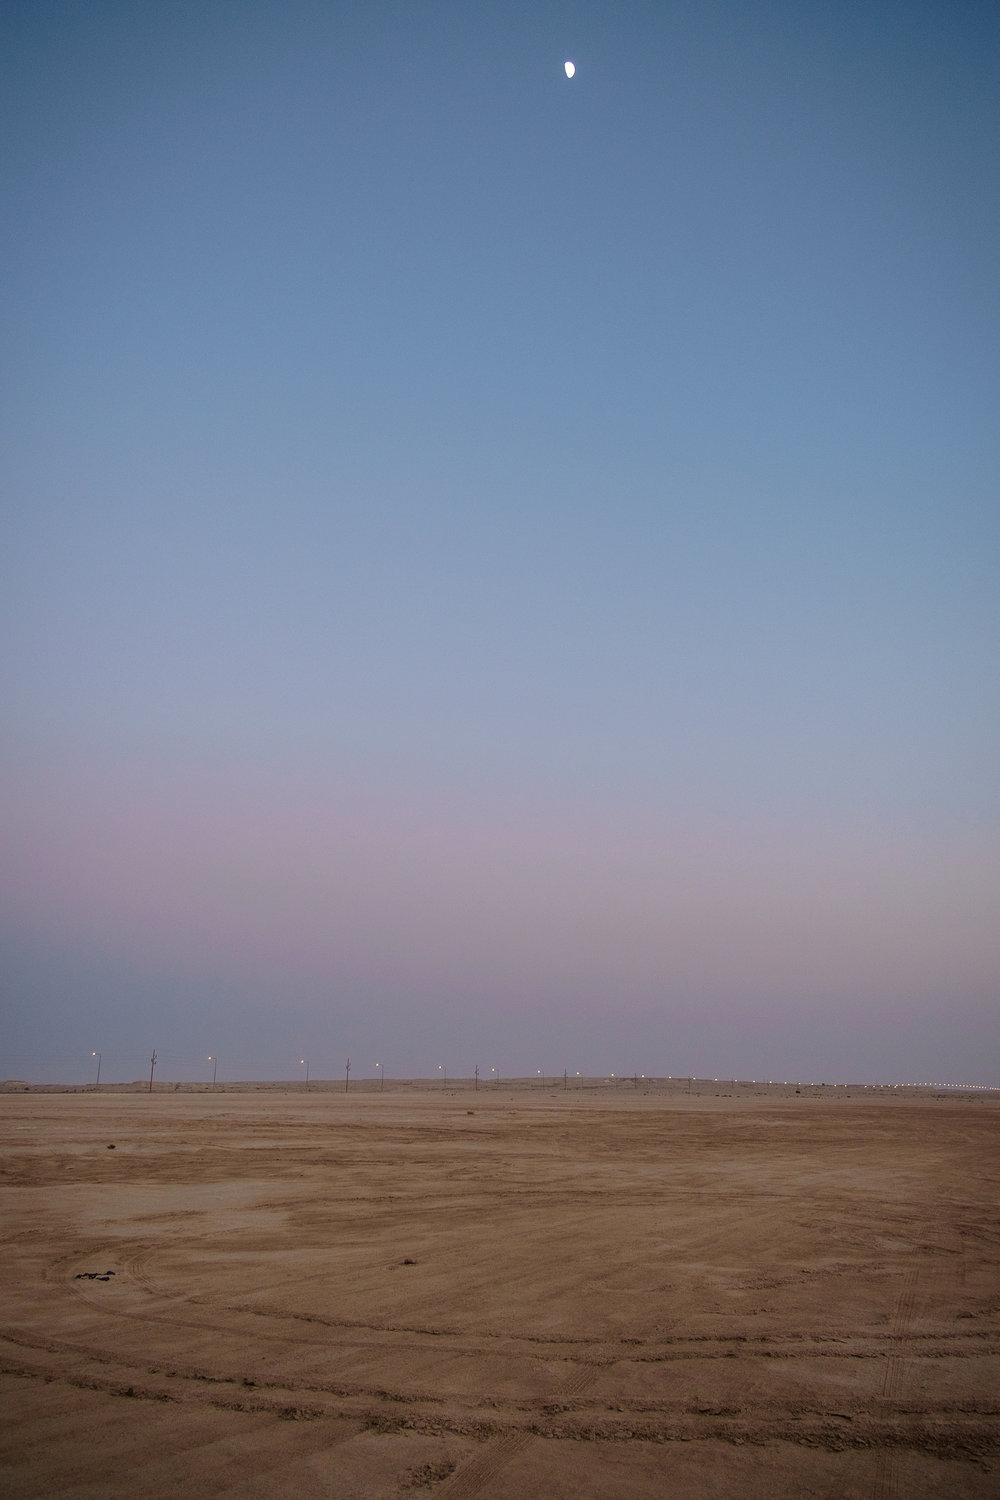 The moon is seen rising above the desert in Zekreet at dusk.